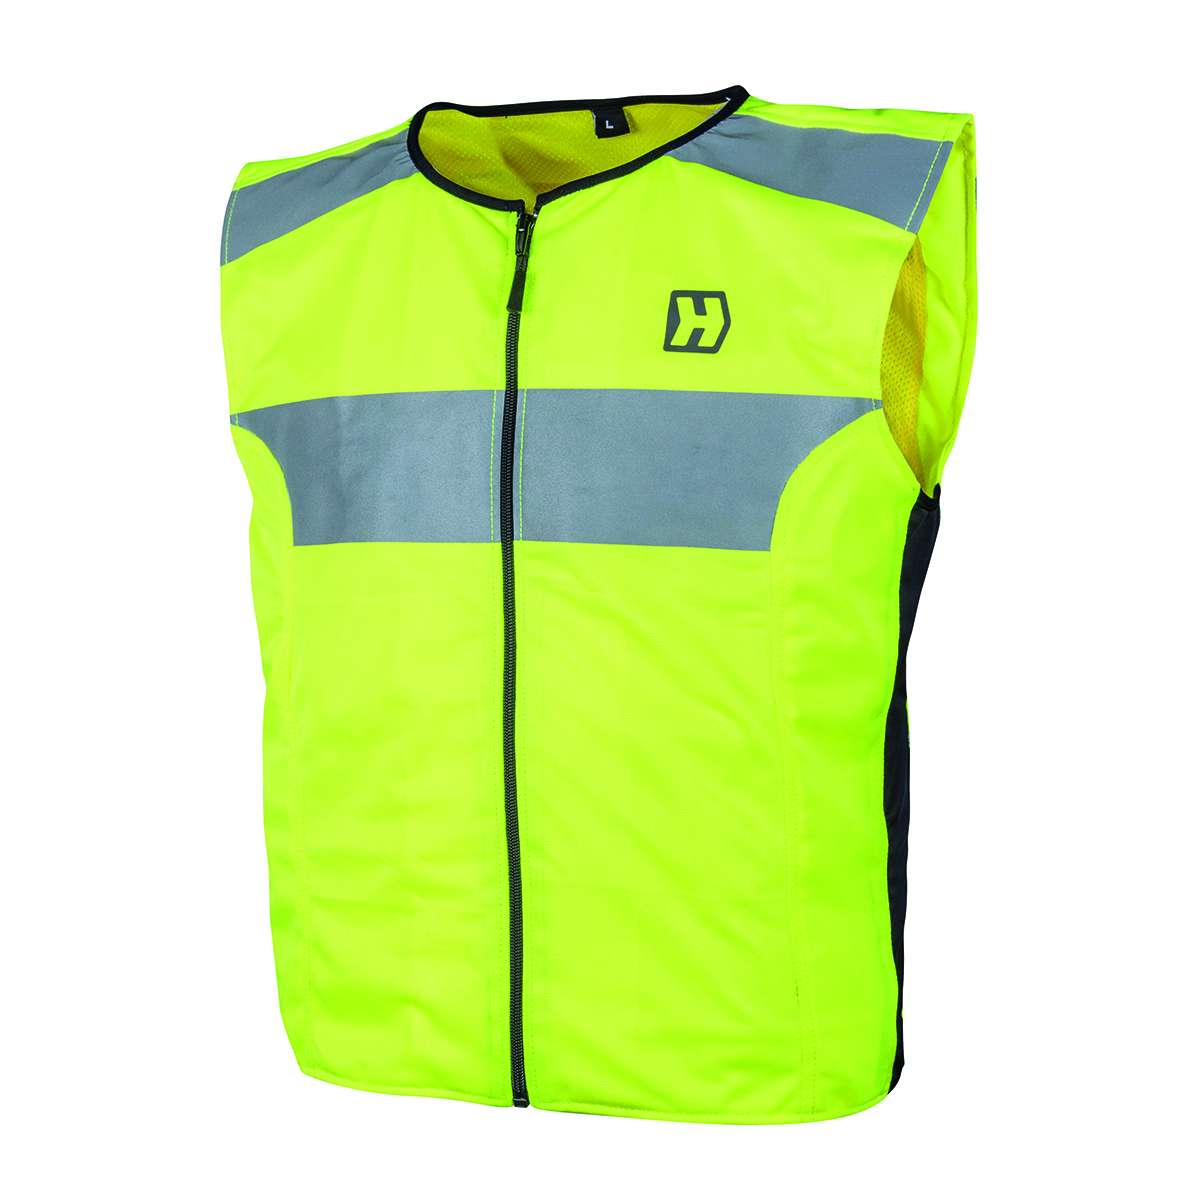 Safety Vest Light - HVE404